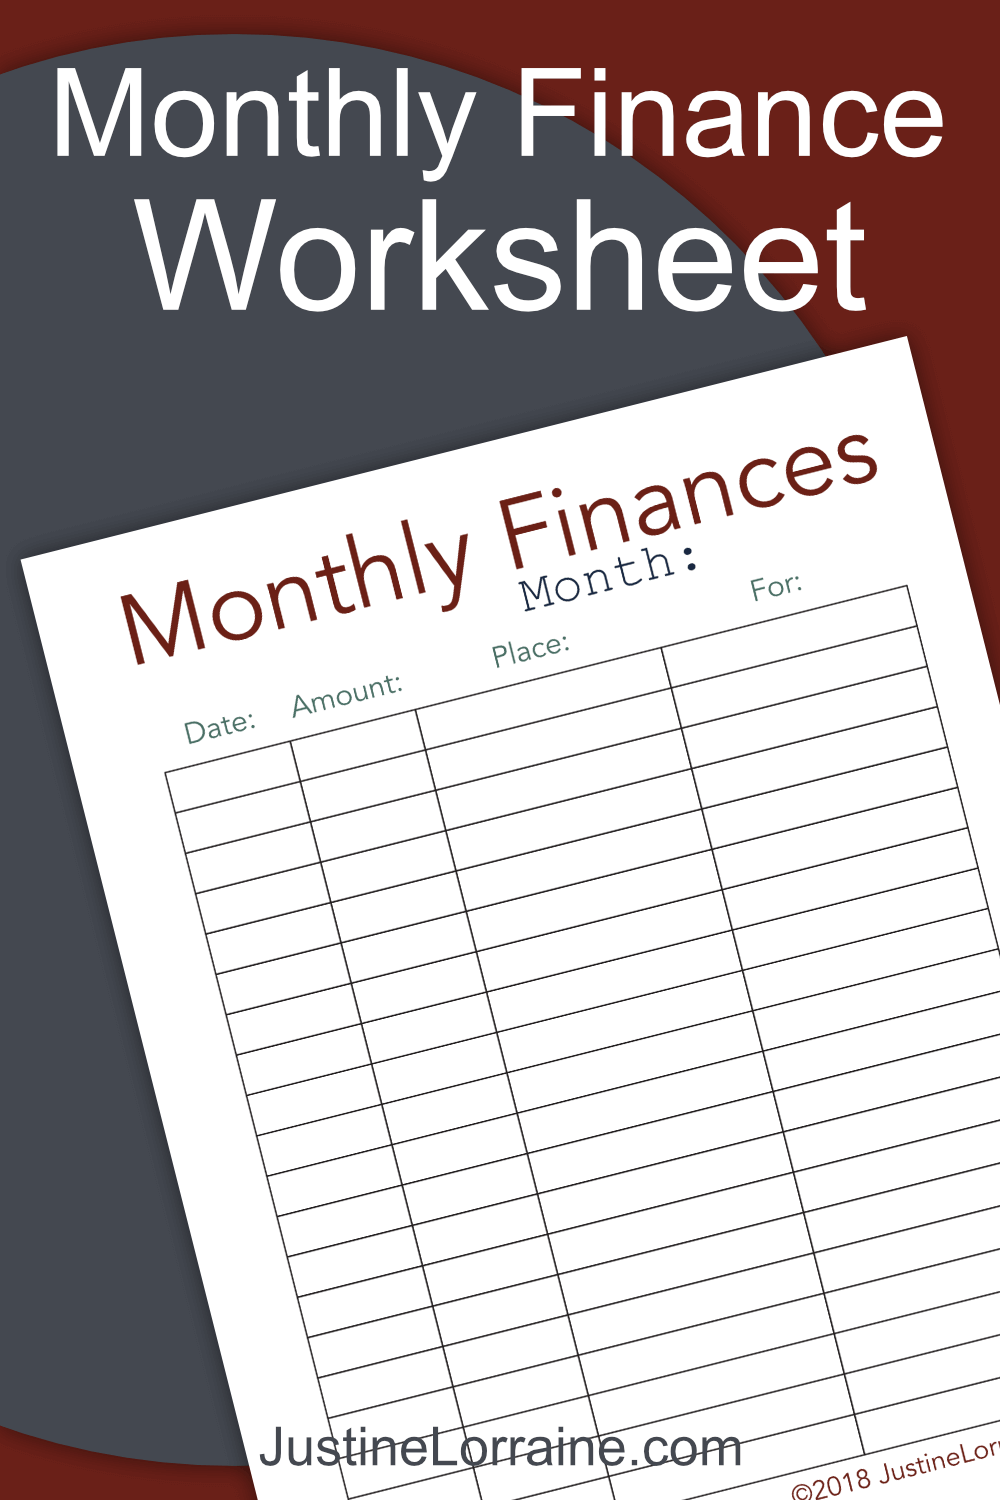 Use this Monthly Finance Worksheet to keep track of money spent each month.